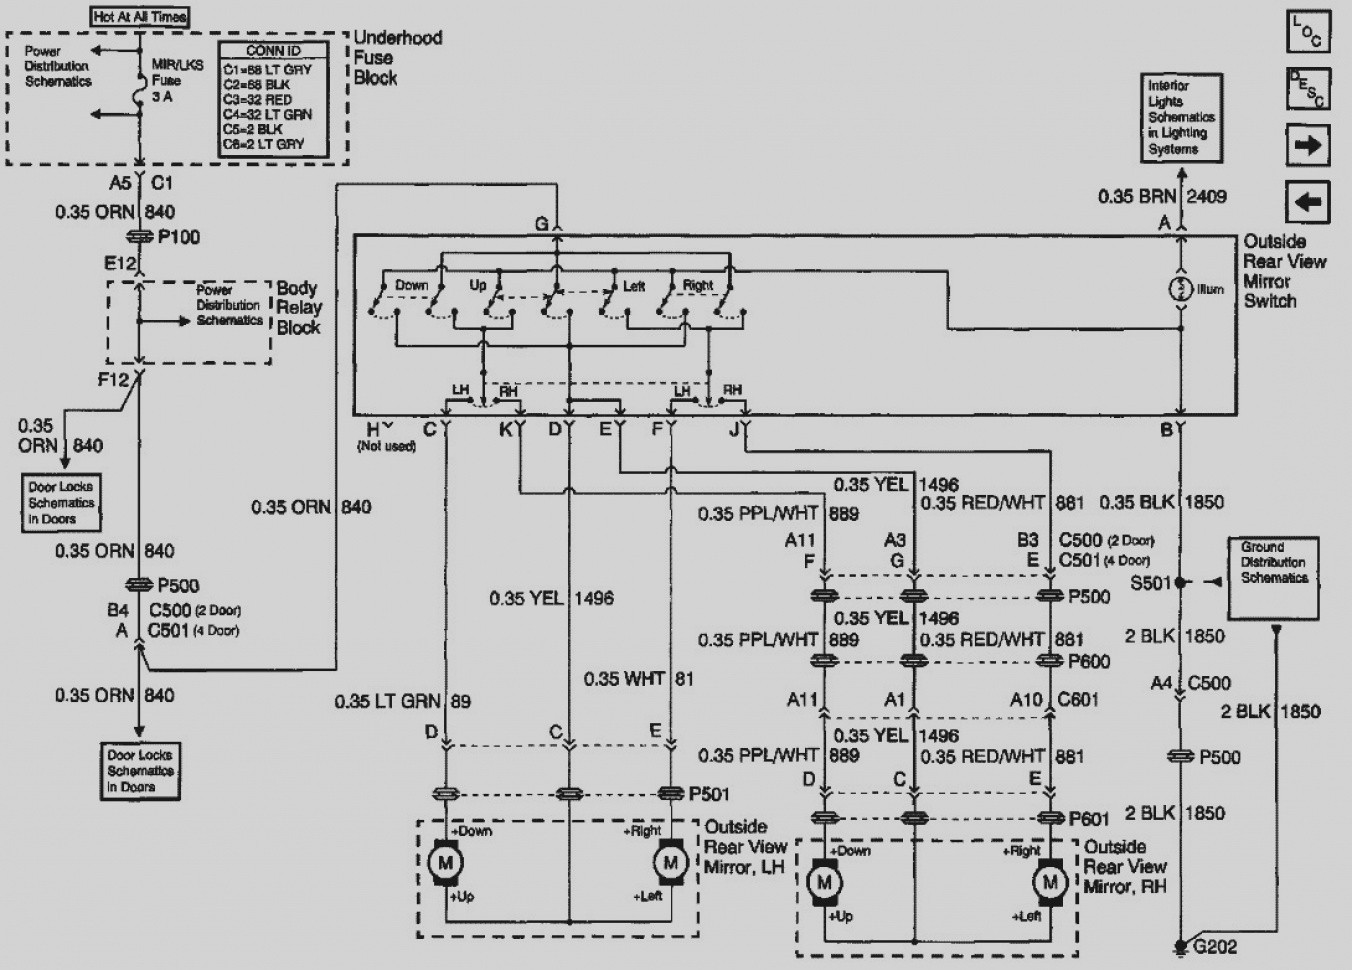 hight resolution of 1999 blazer wiring diagram wiring diagram rows 1999 chevy blazer wiring diagram 1999 chevrolet blazer wiring diagram